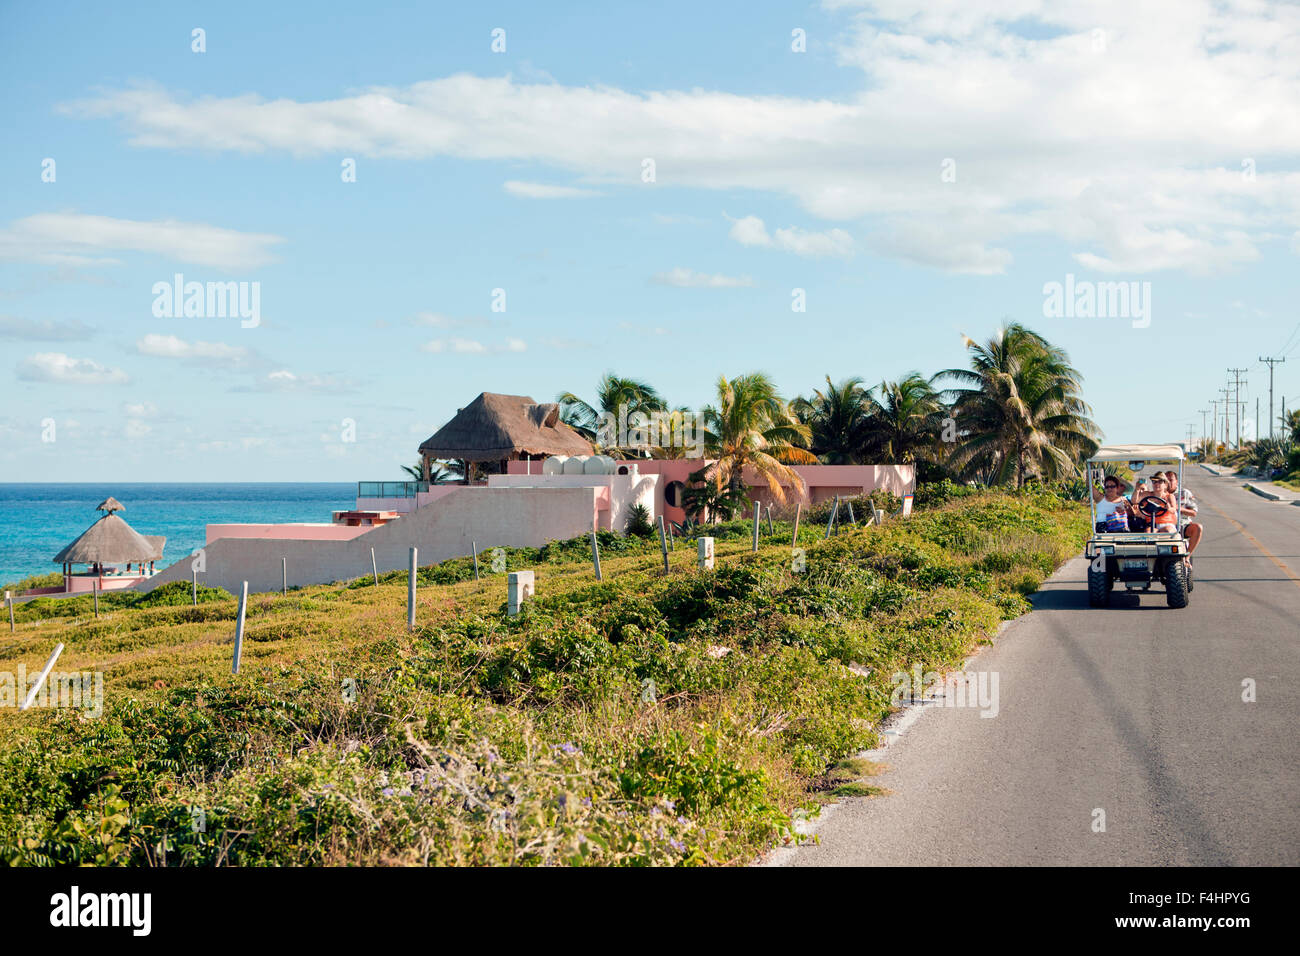 Tourists riding golf carts on Rueda Medina, a main road that runs from Playa Norte to Punta Sur in Isla Mujeres, - Stock Image